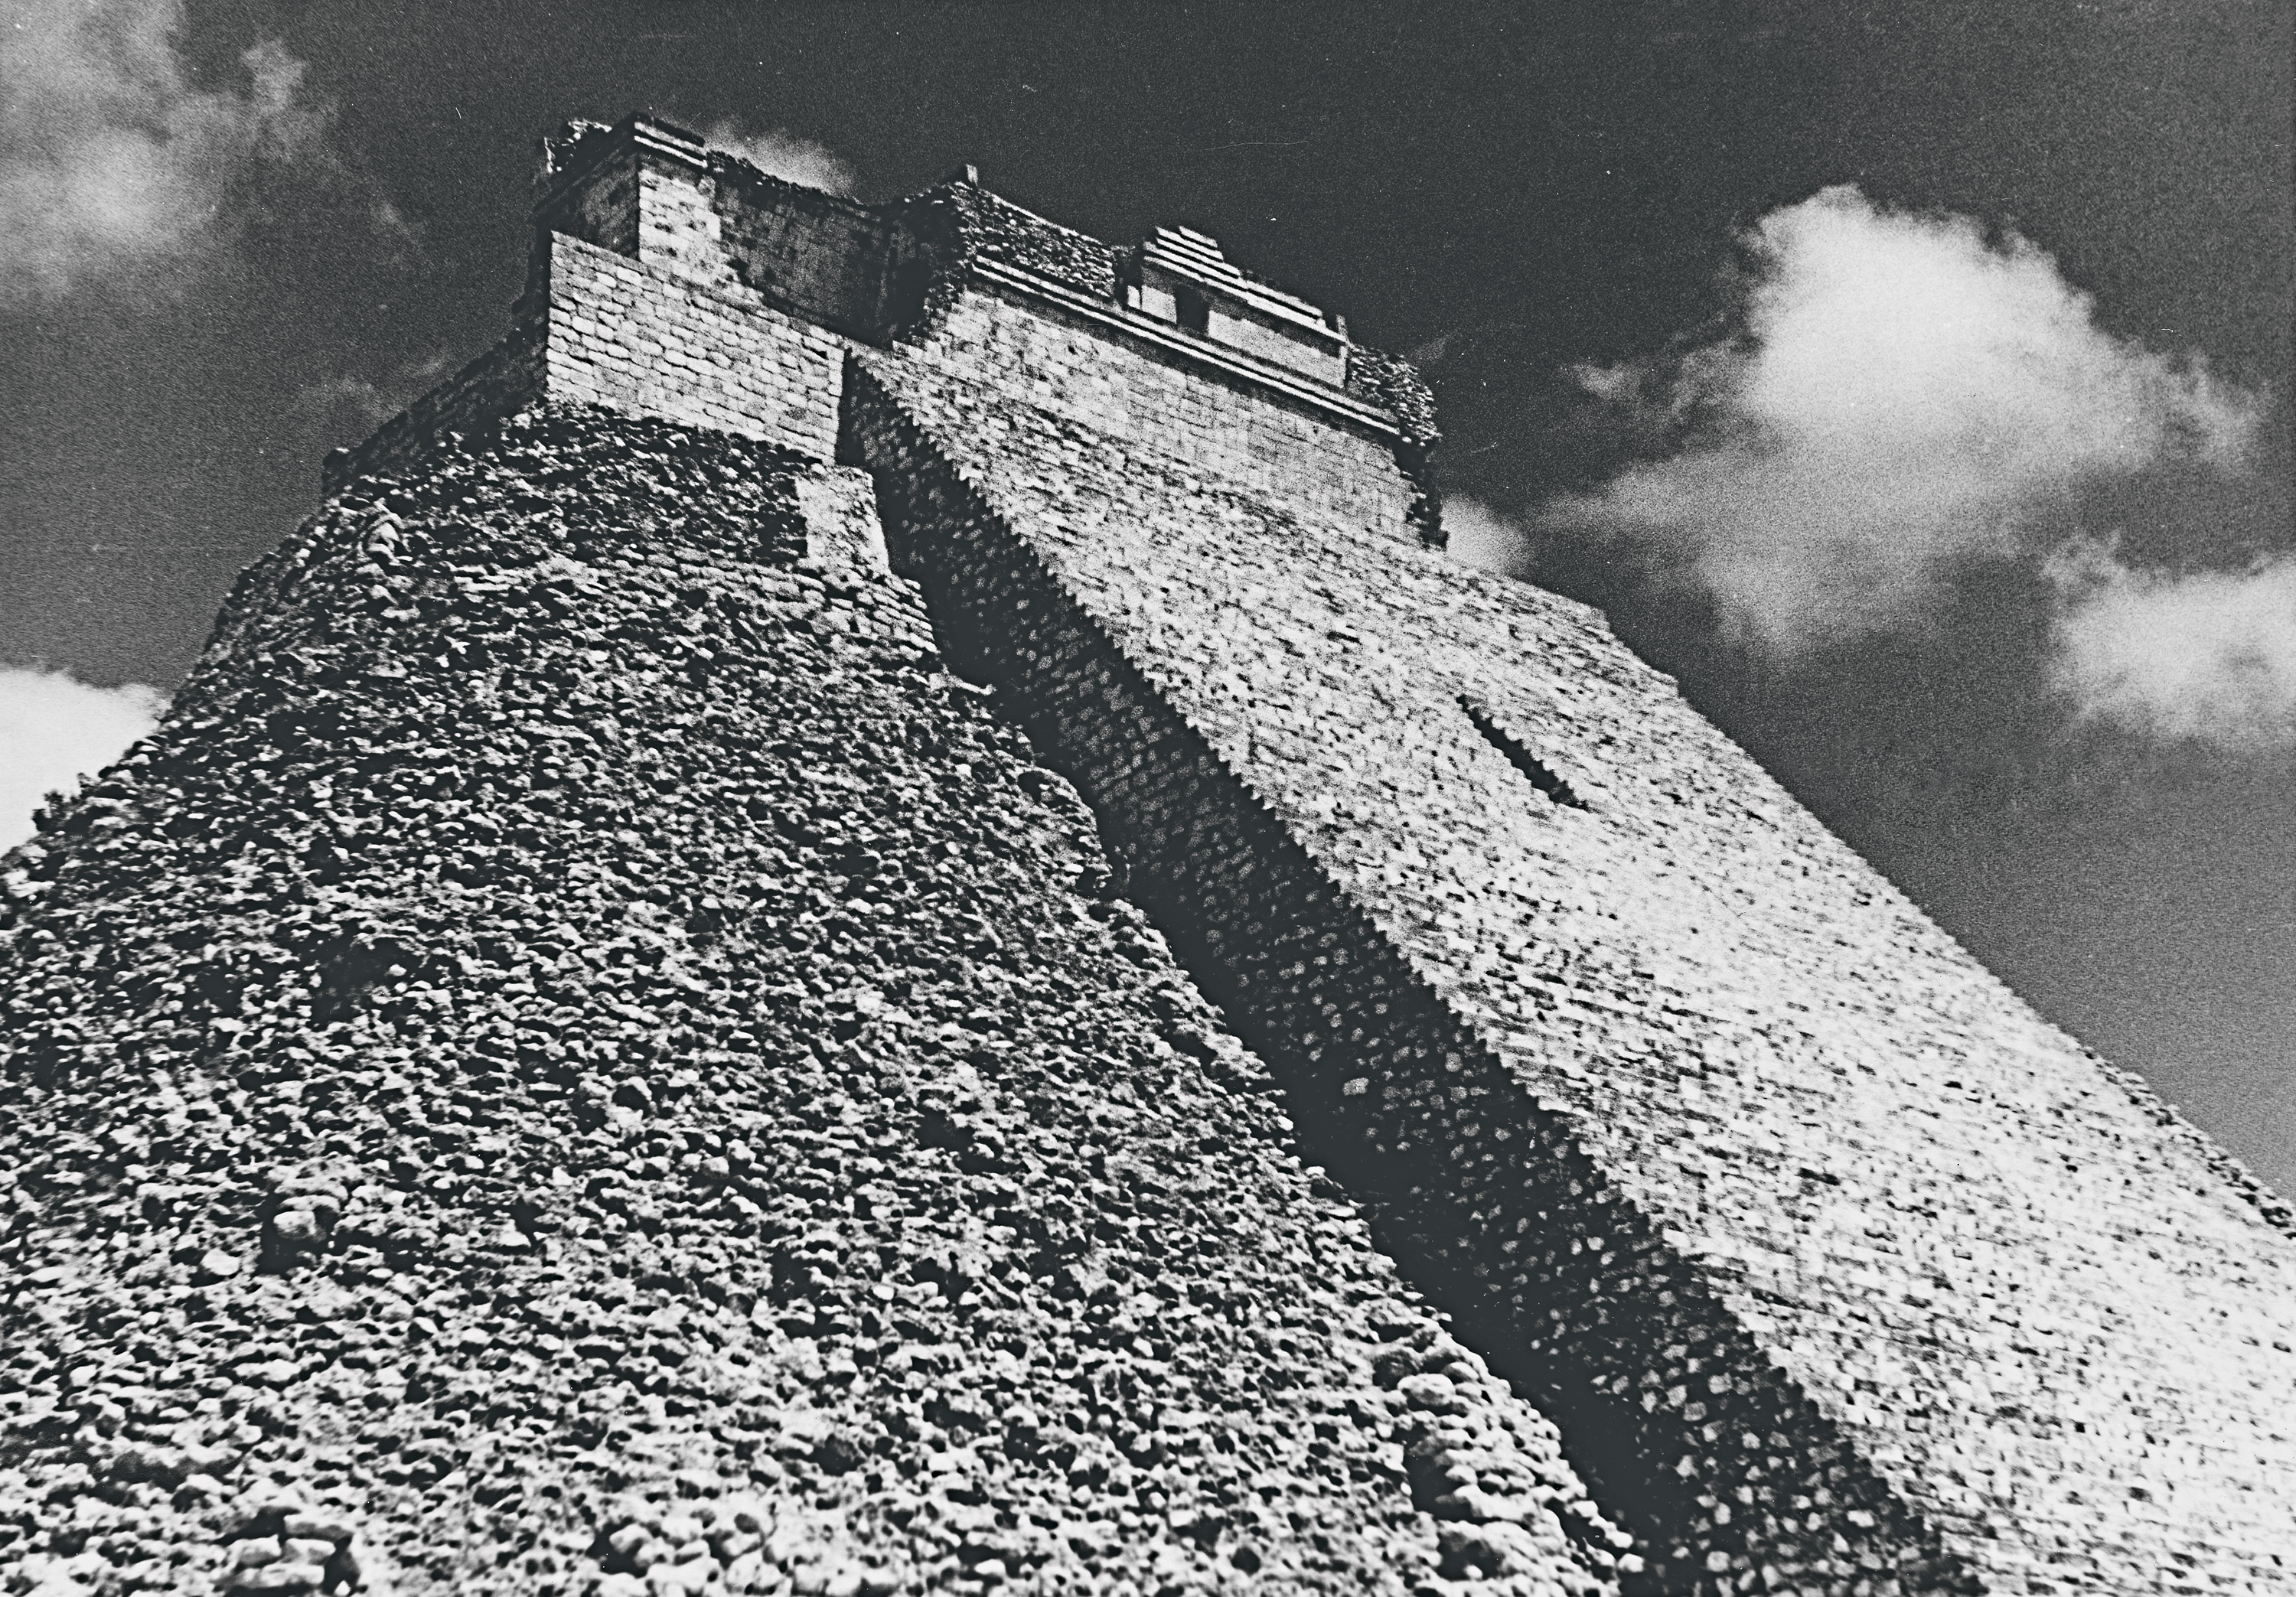 The Pyramid of the Magician, Uxmal